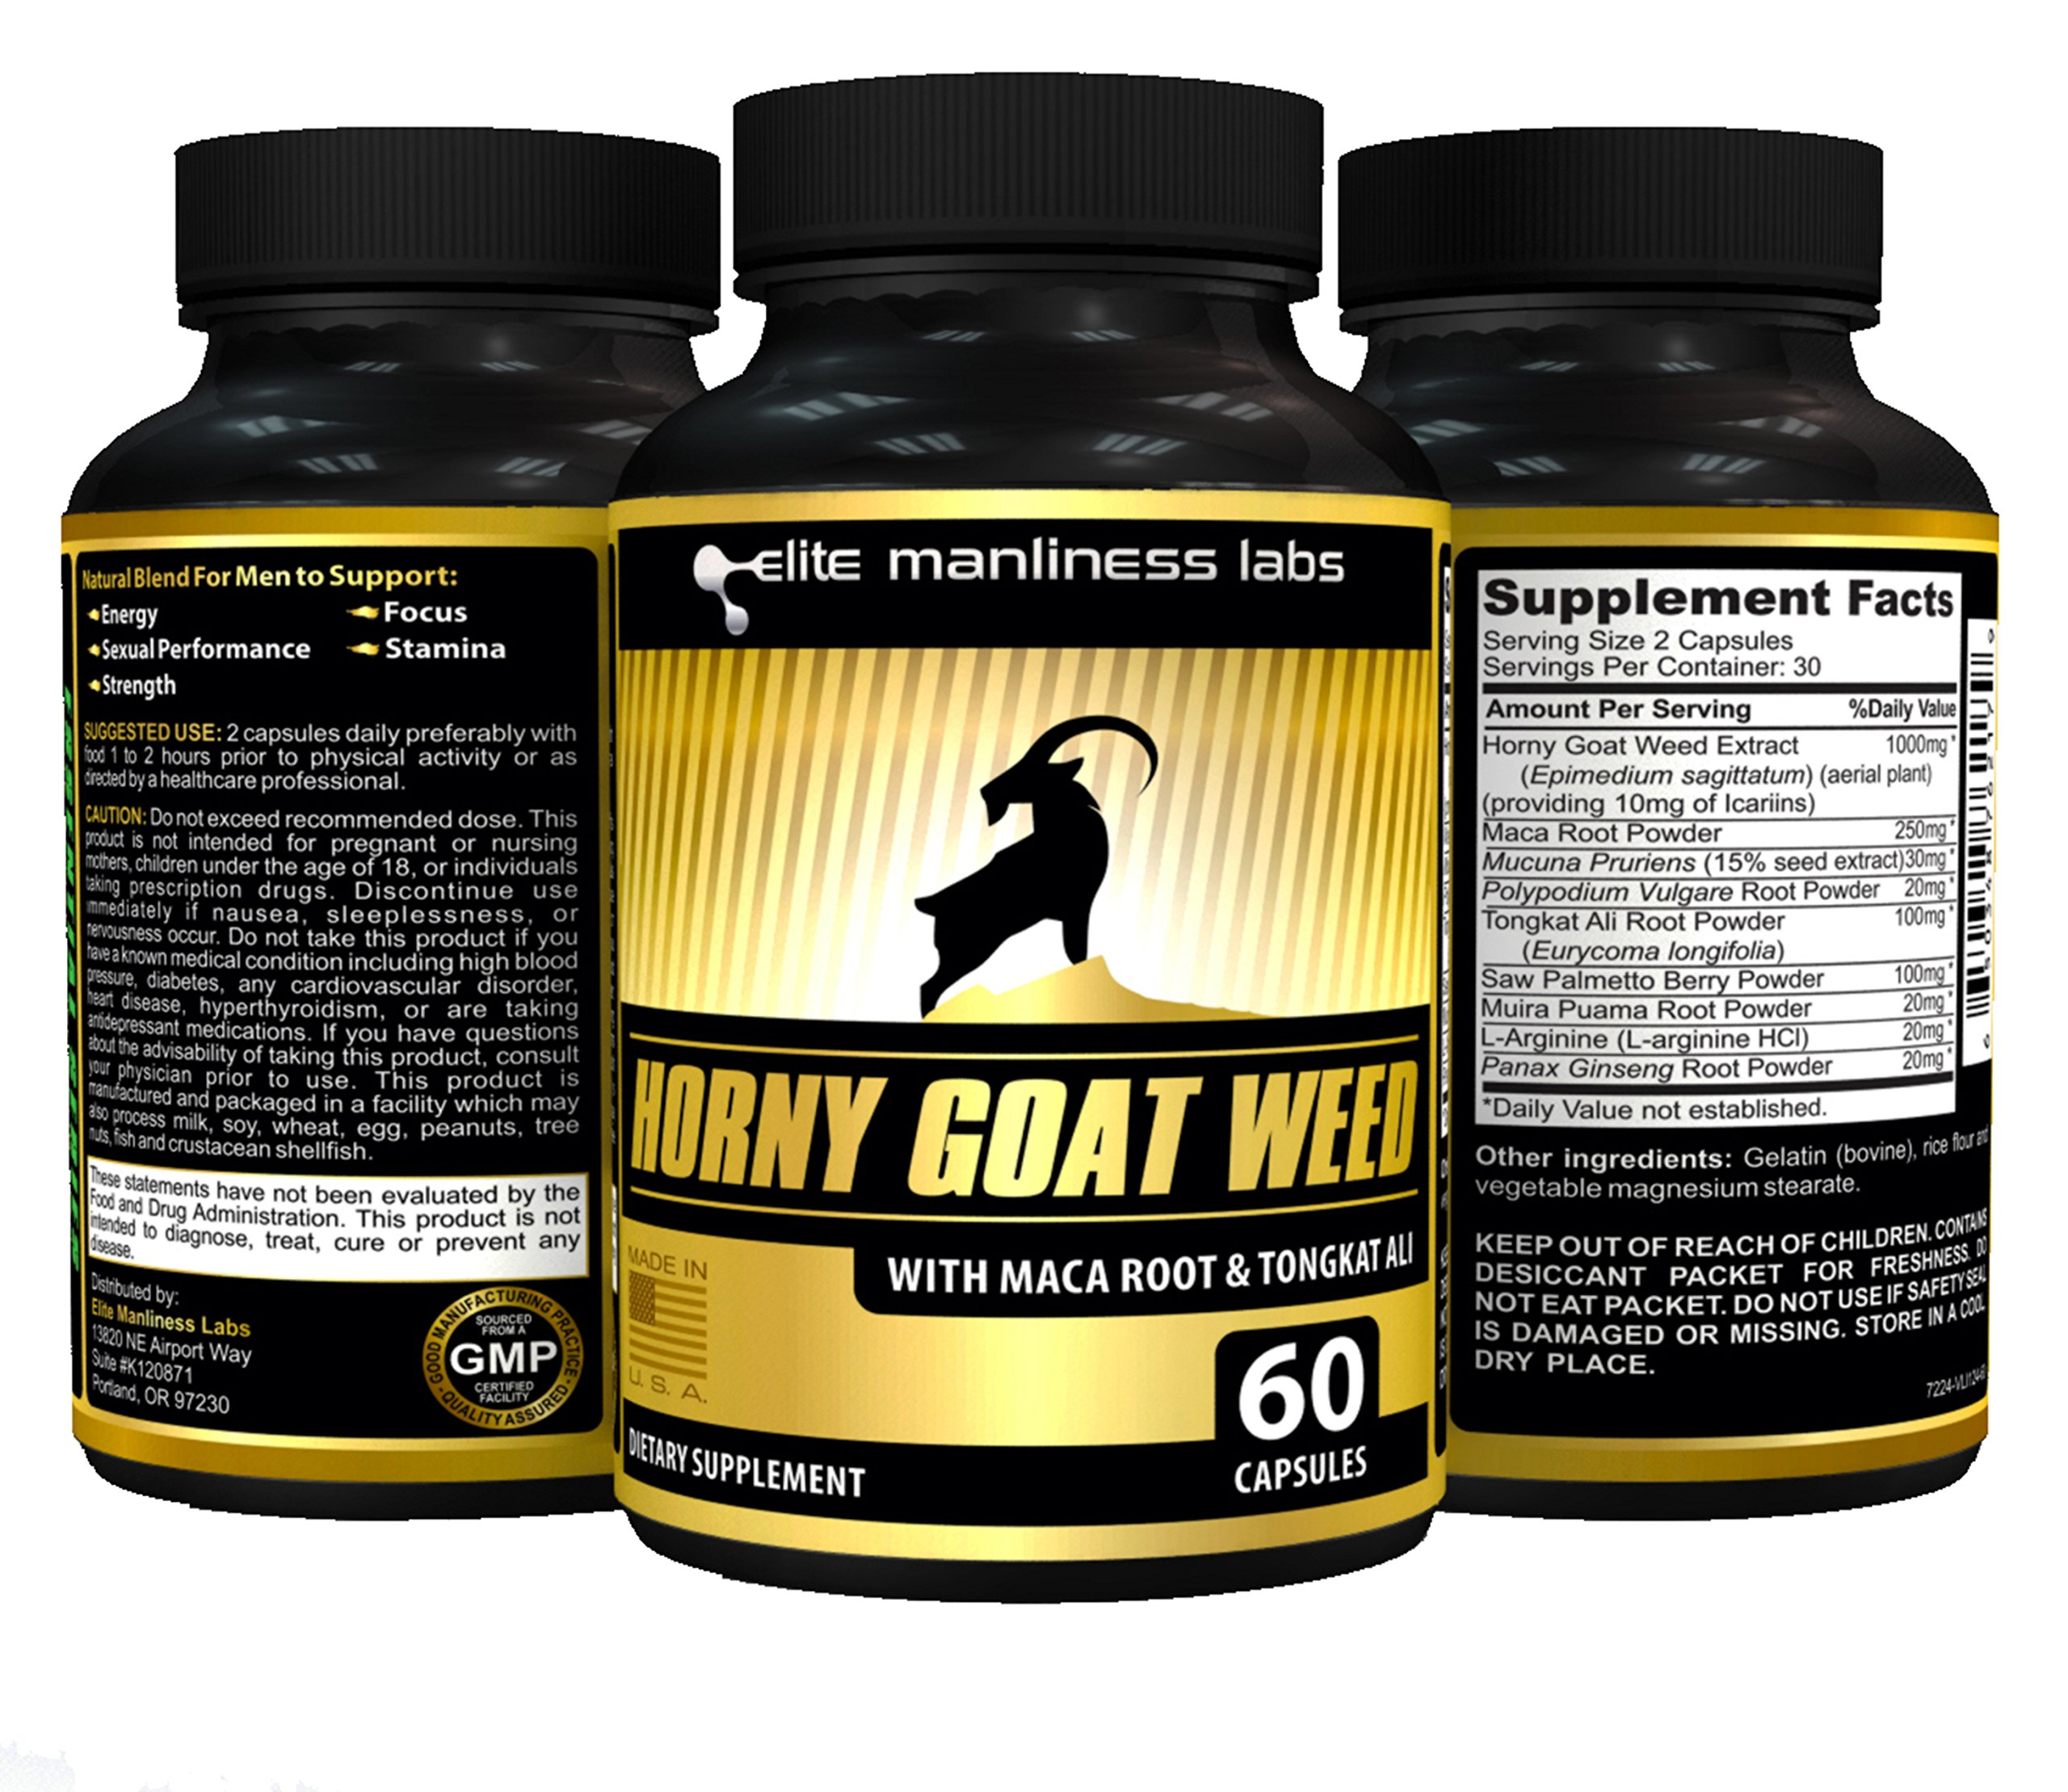 Horny Goat Weed With Tongkat Ali, Maca Root Extract & L-Arginine - Natural Herbal Complex Extract For Men (60 Capsules)